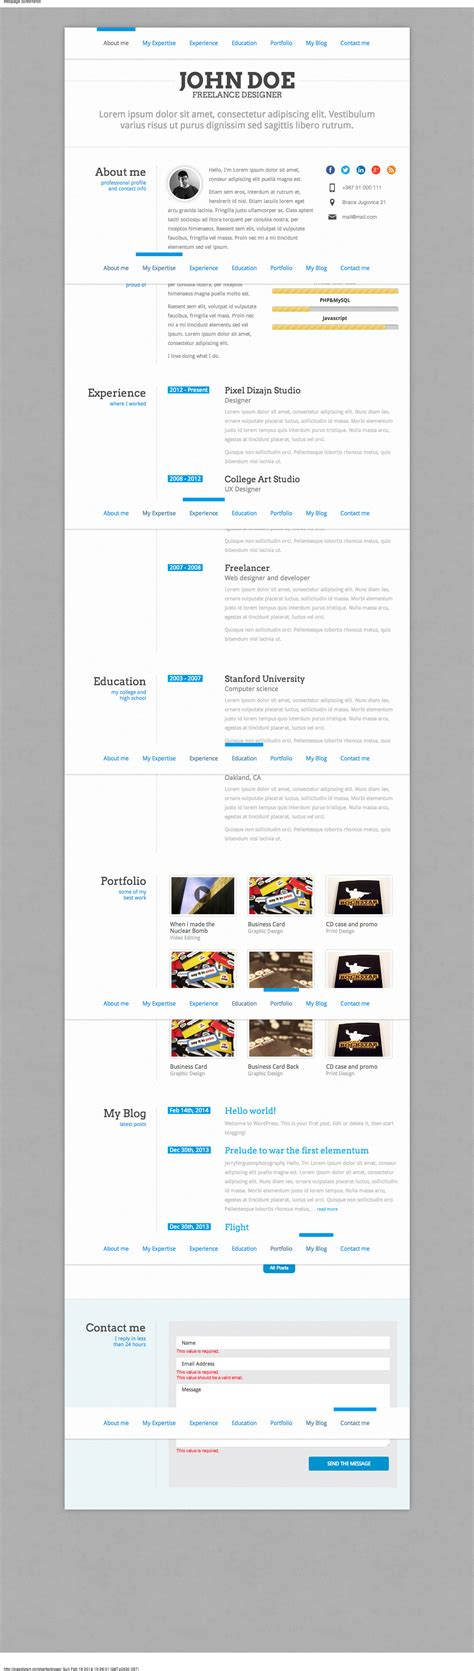 html css responsive layout html css responsive online resume assignment